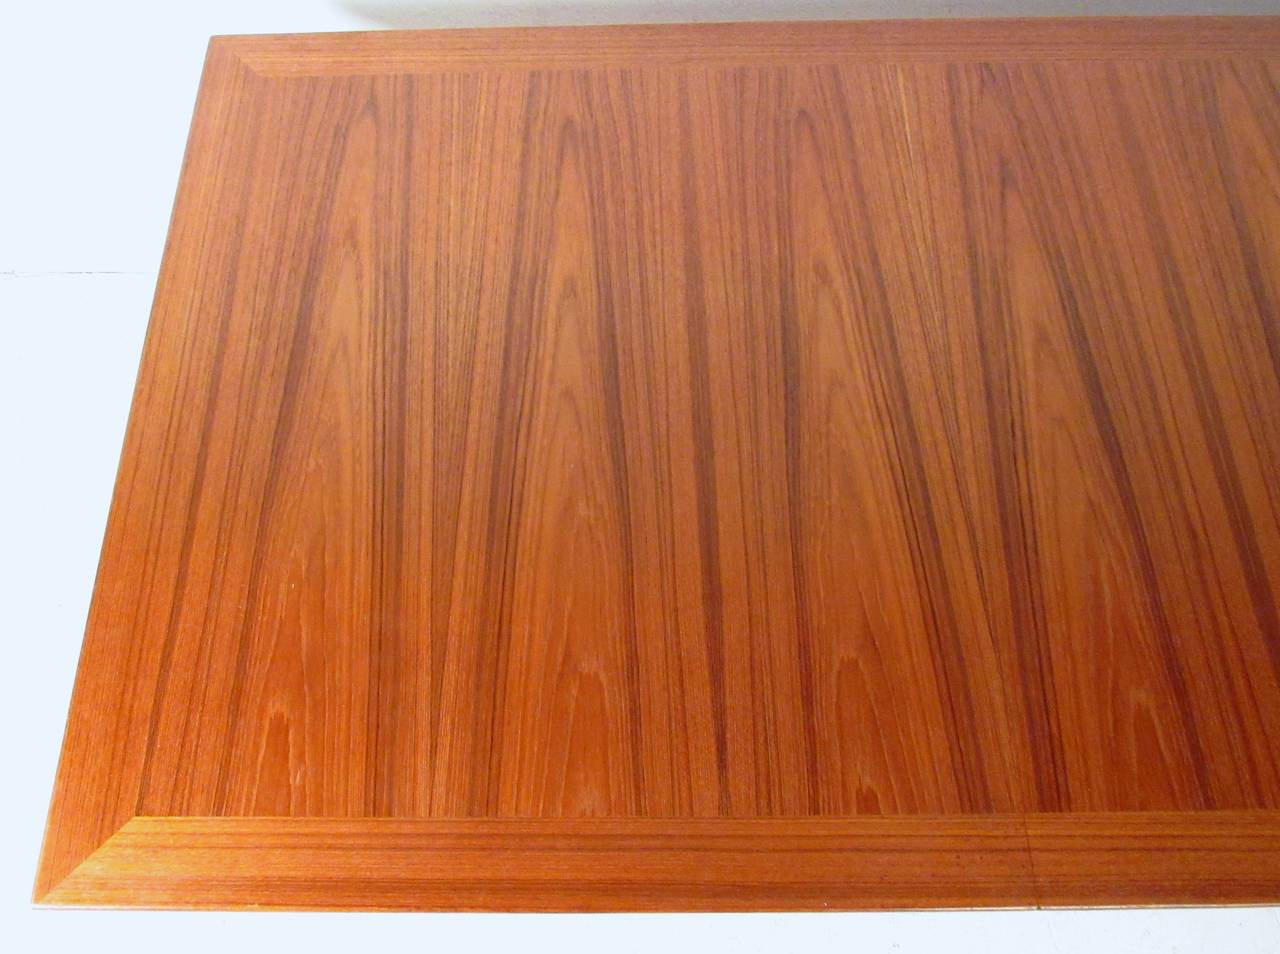 Mid-Century Modern Danish Teak Dining Table with Leaves For Sale 1